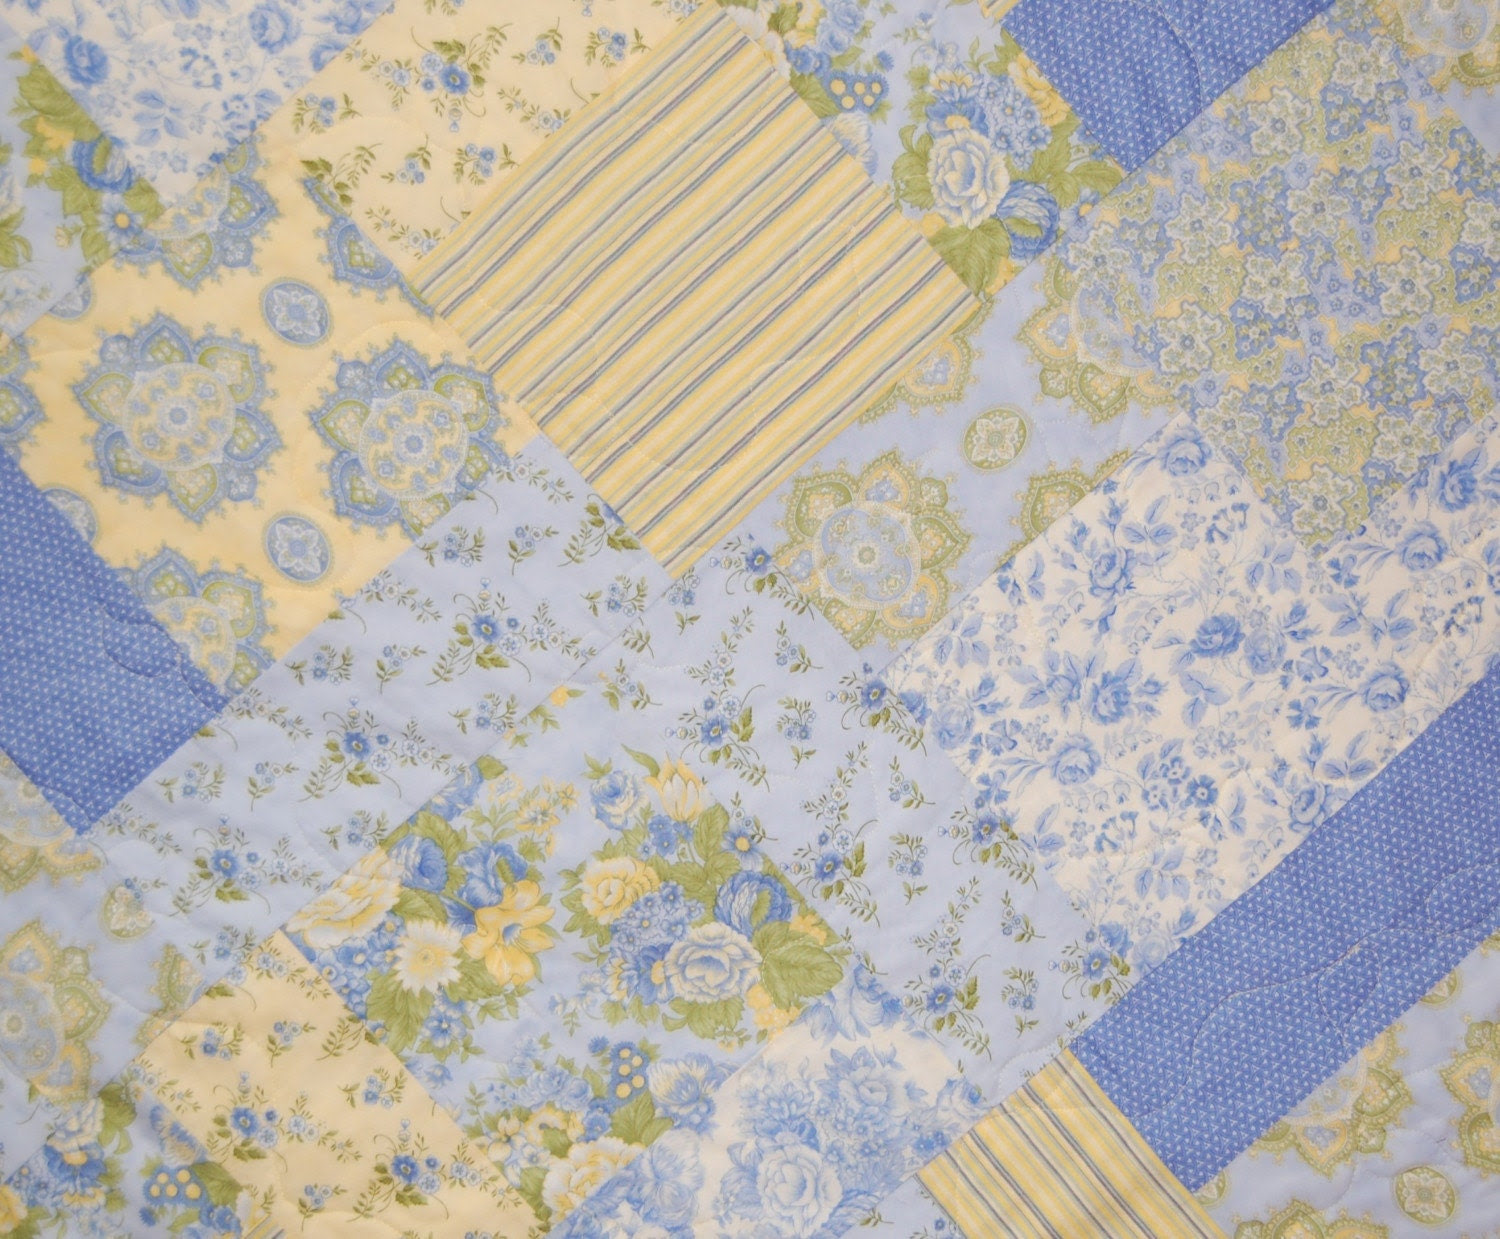 French Cozy Lap Quilt in Moda Nature's Notebook prints